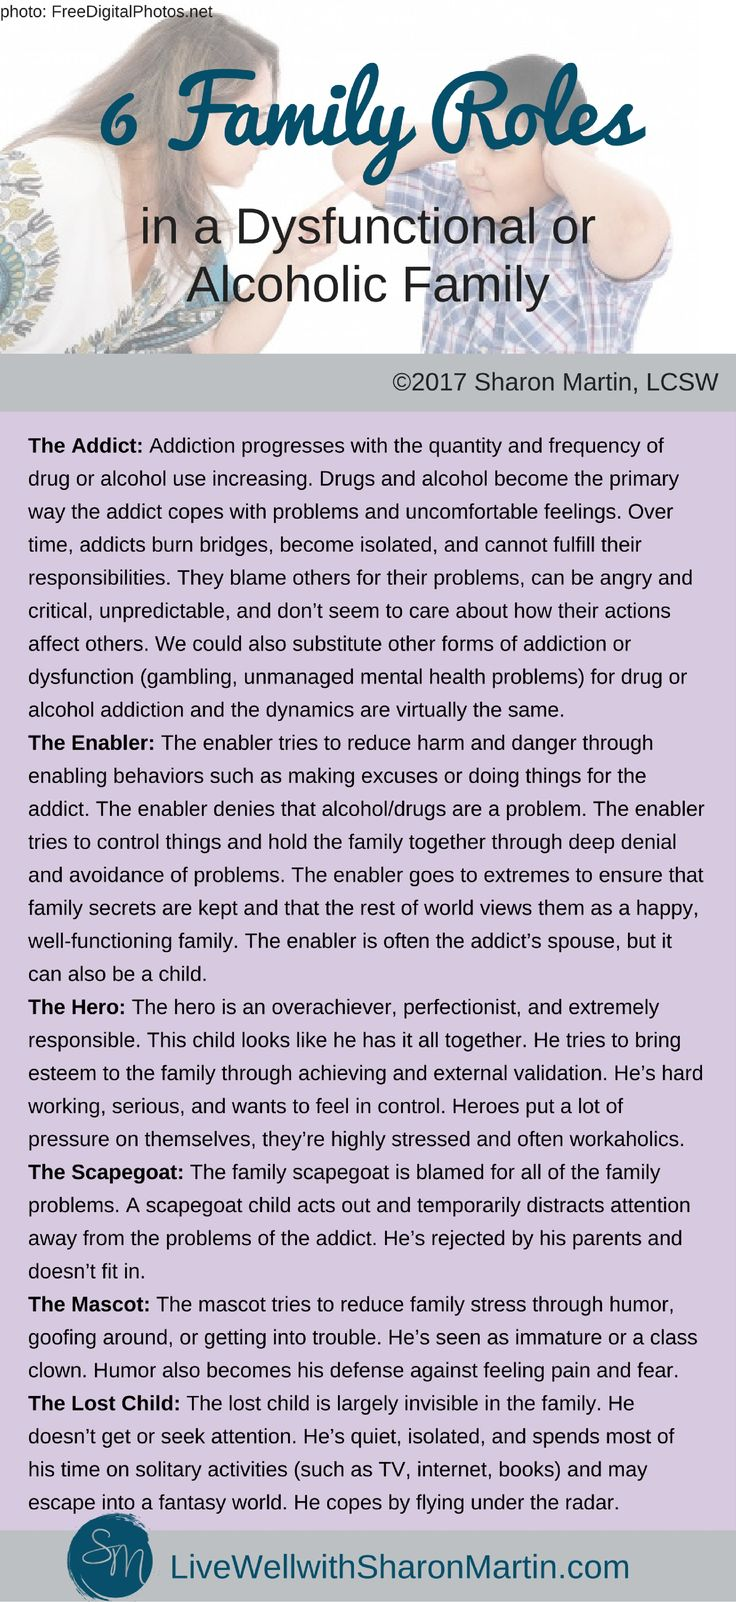 6 Family Roles in a Dysfunctional or Alcoholic Family. Understand codependent family roles. Addiction is a family disease.